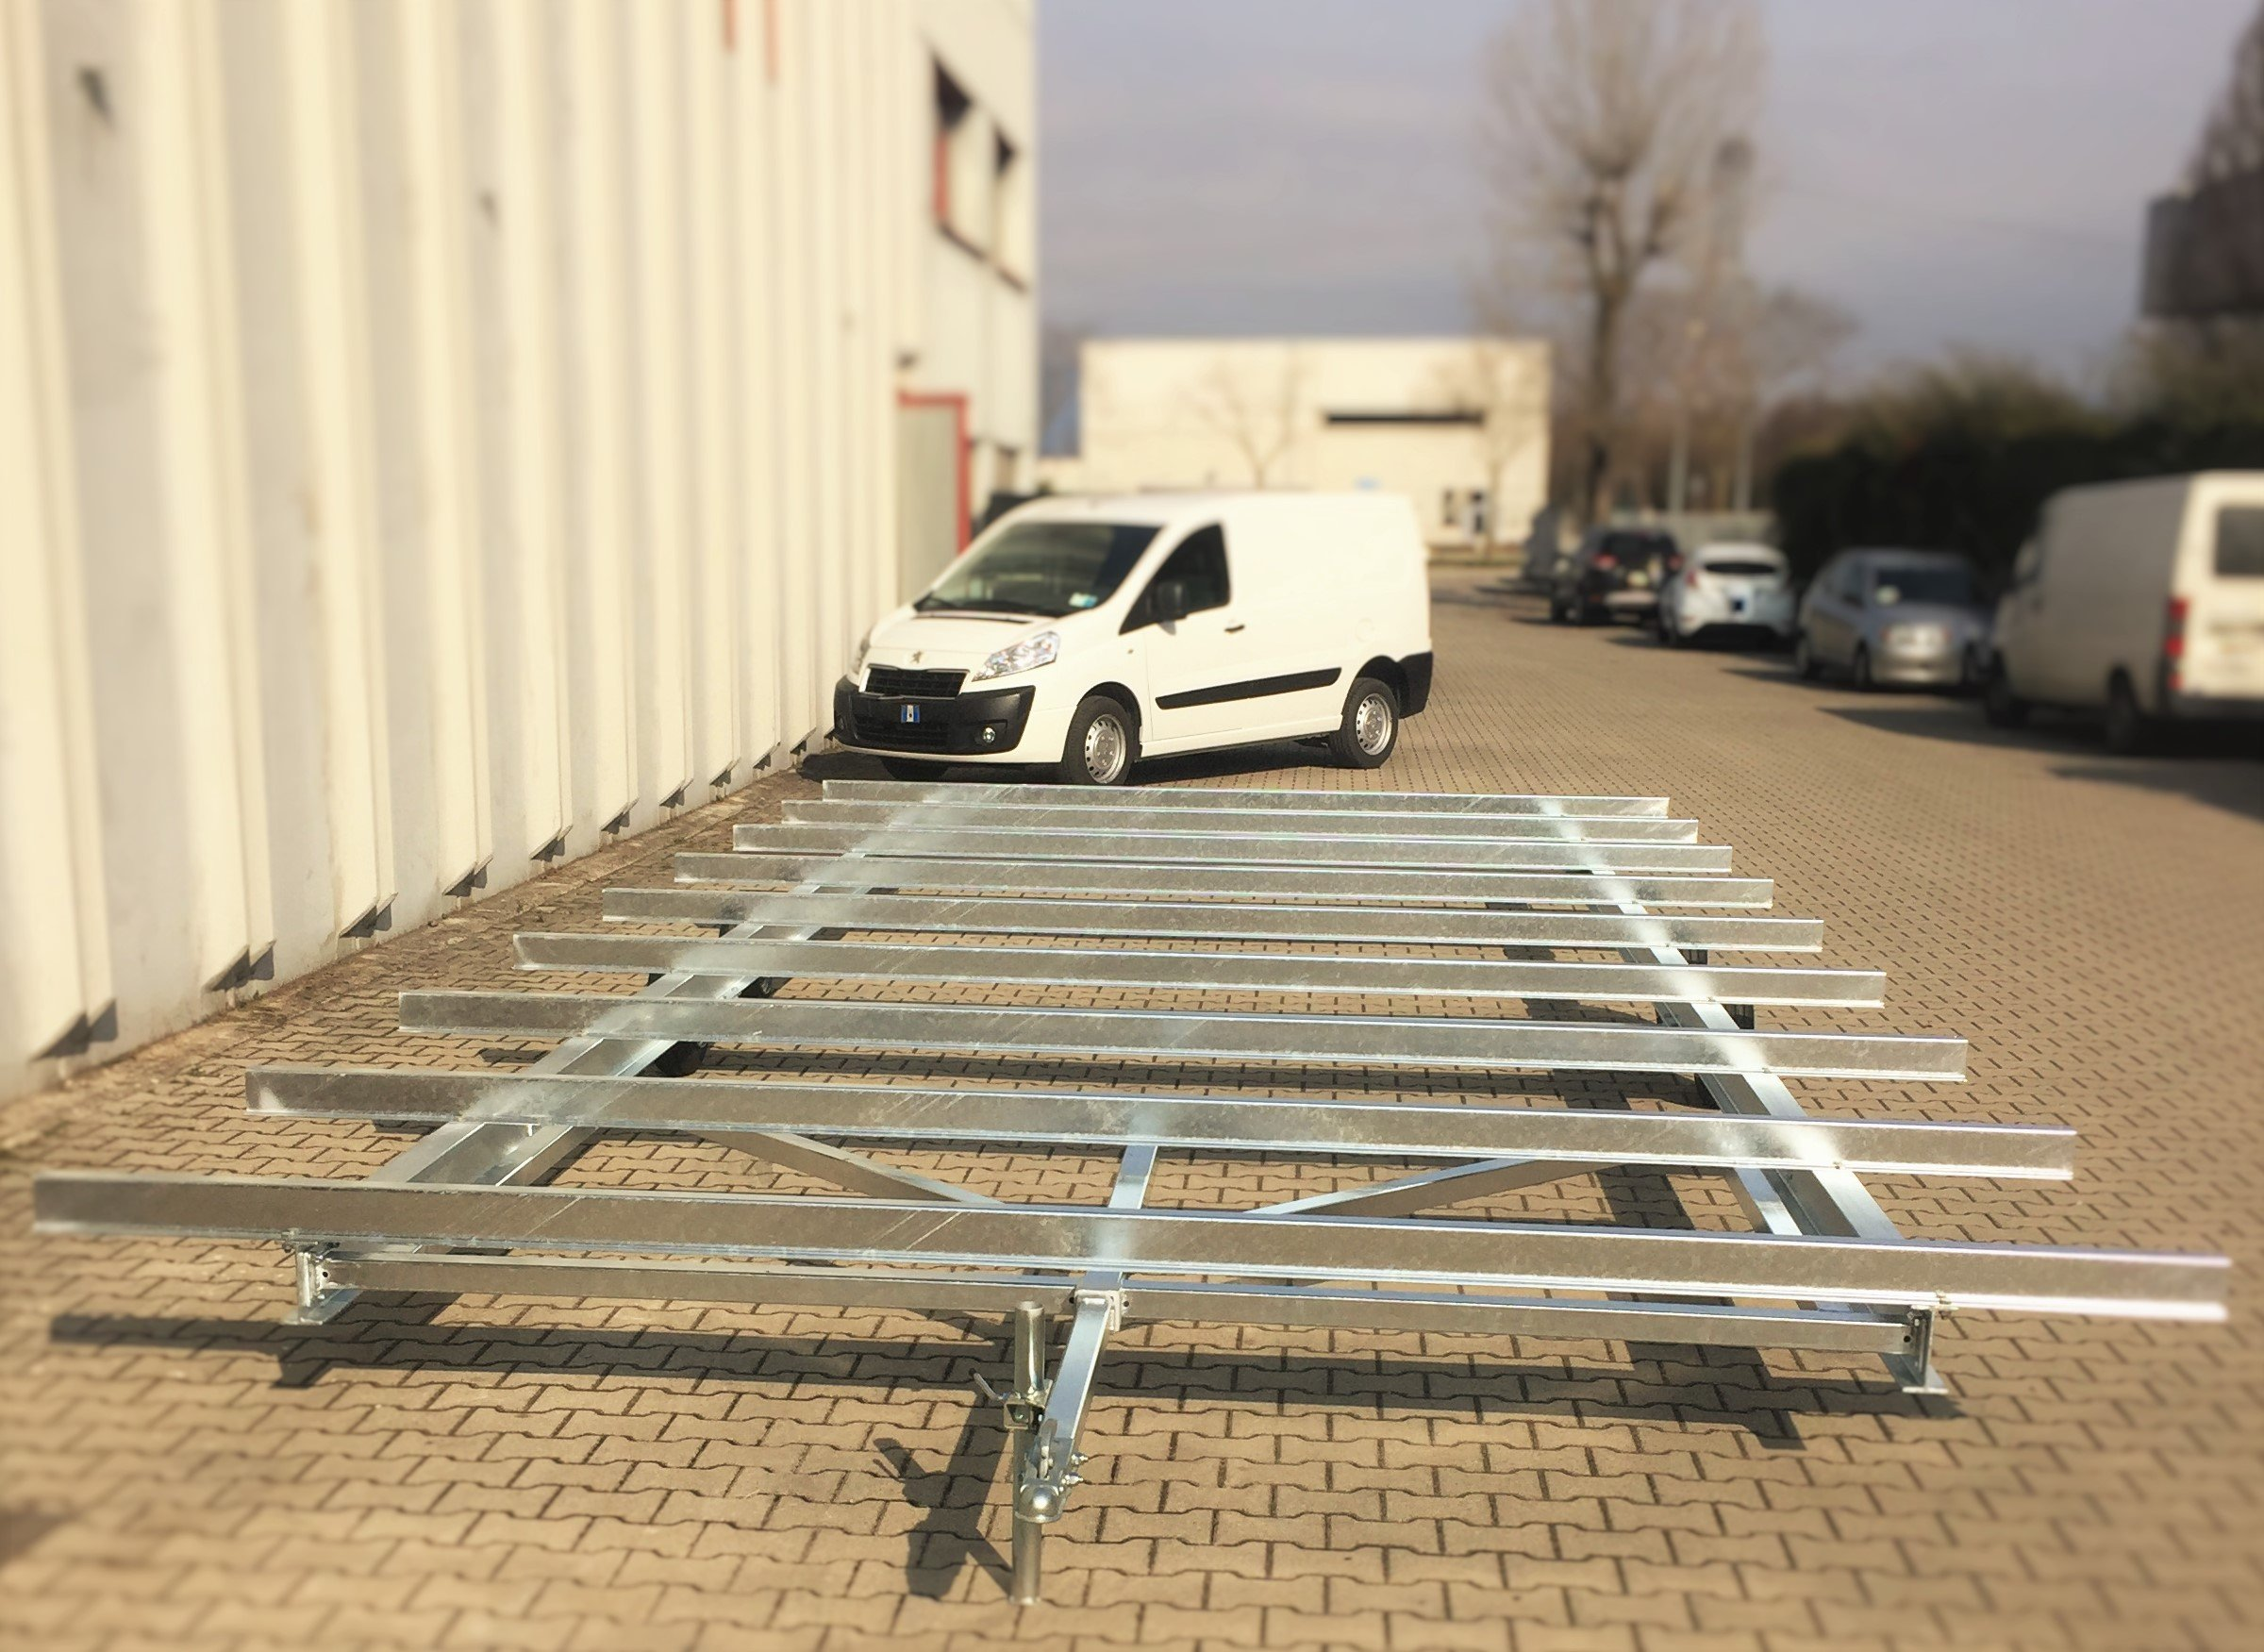 Chassis for mobile home